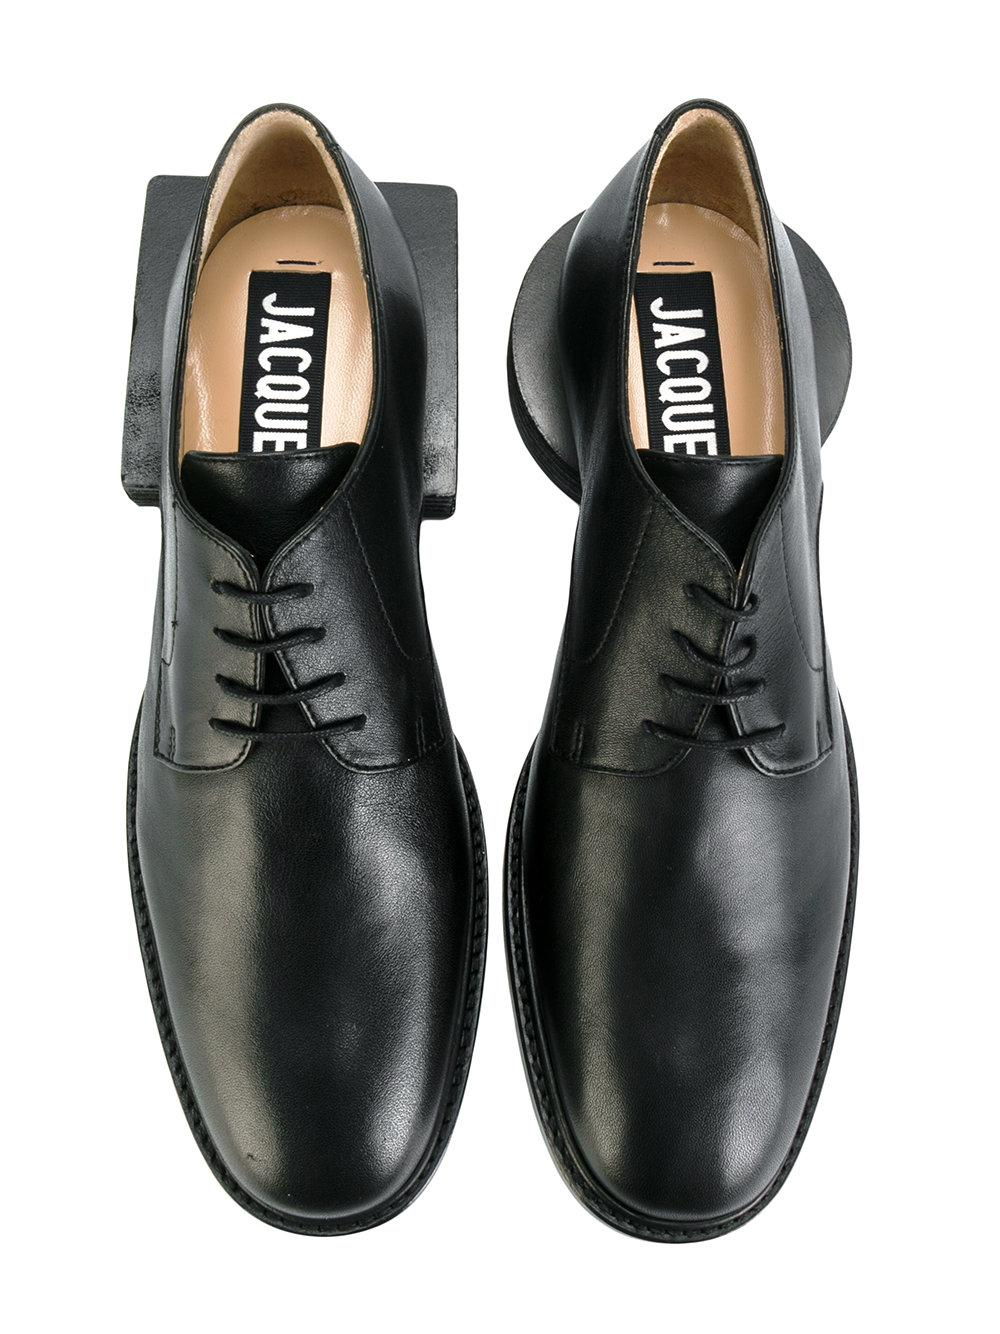 Jacquemus Leather Square Heel Lace-up Shoes in Black for Men